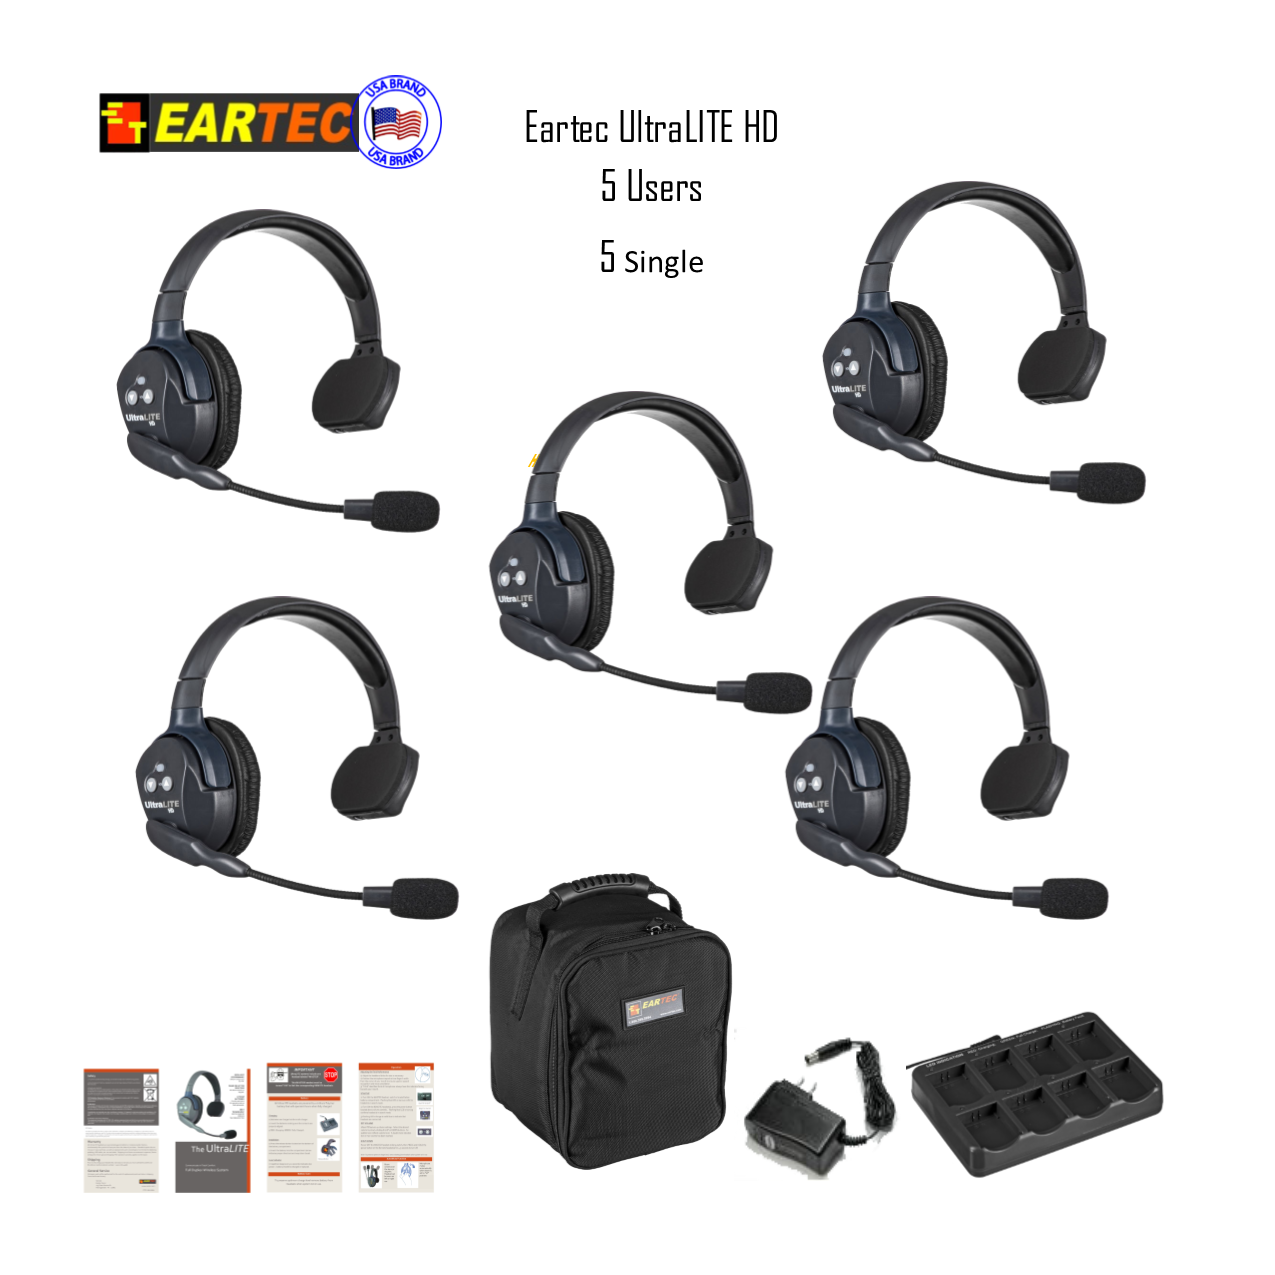 Eartec Ul5S Ultralite 5 Pers. System  5 Single Headsets Intercom Systems Eartec